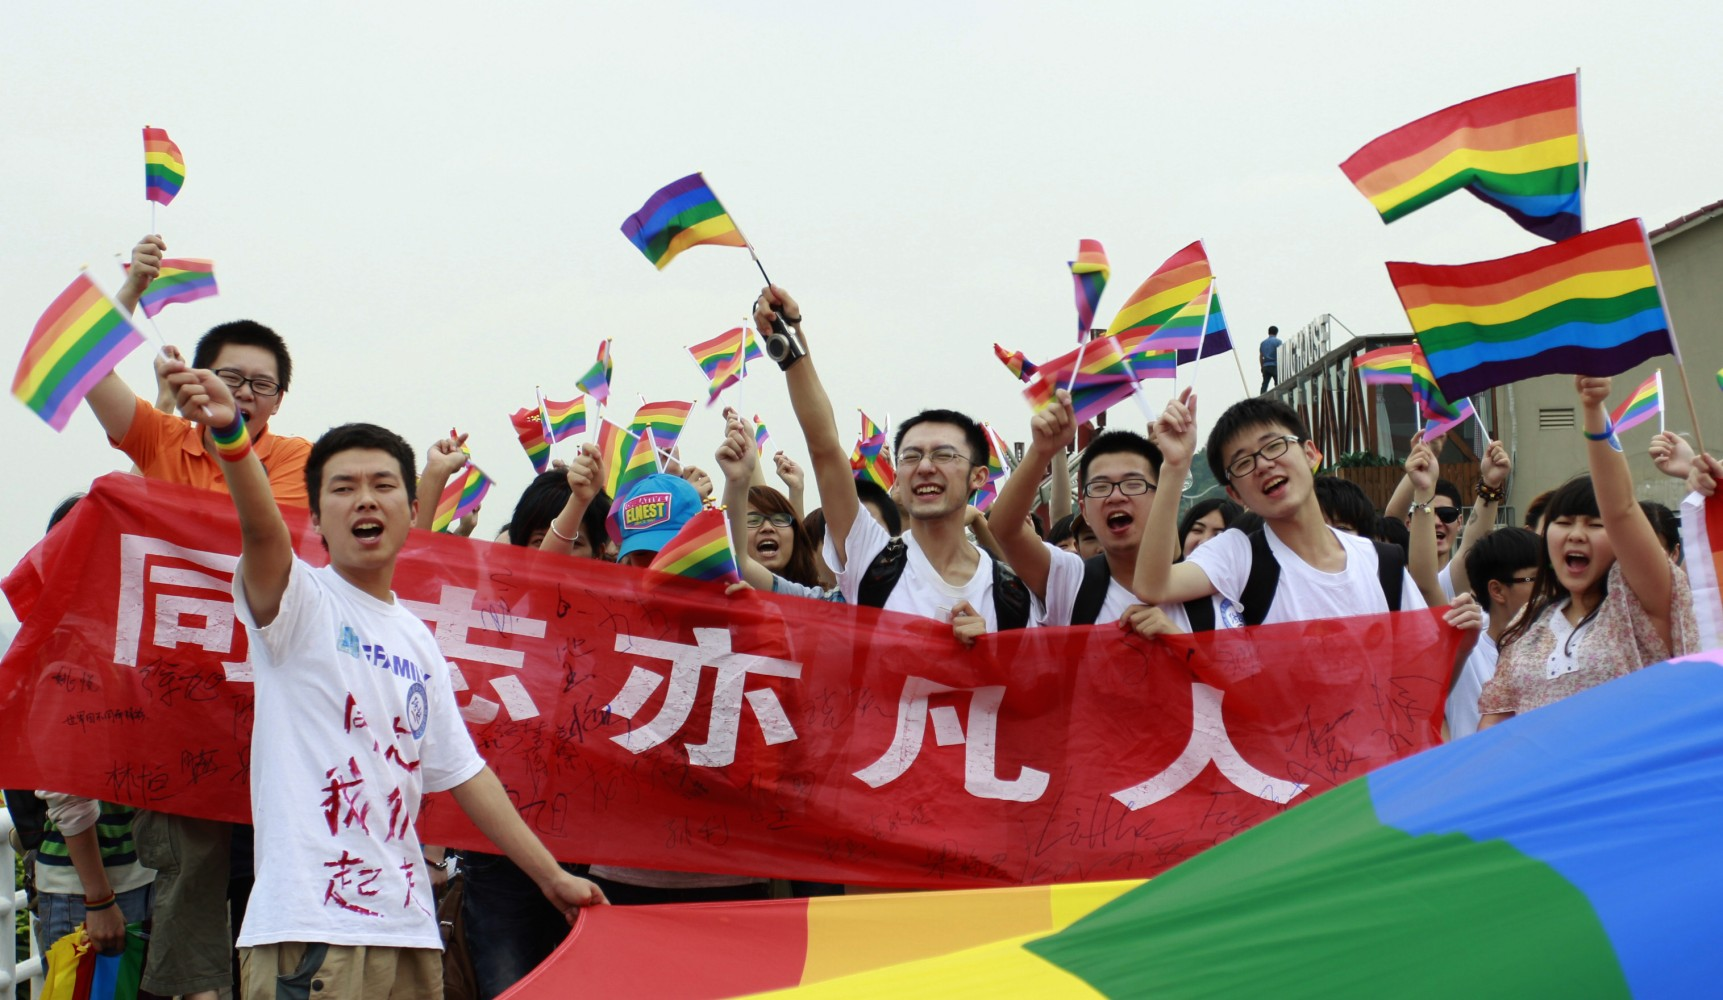 Gay activists say deeply conservative attitudes towards homosexuality in some